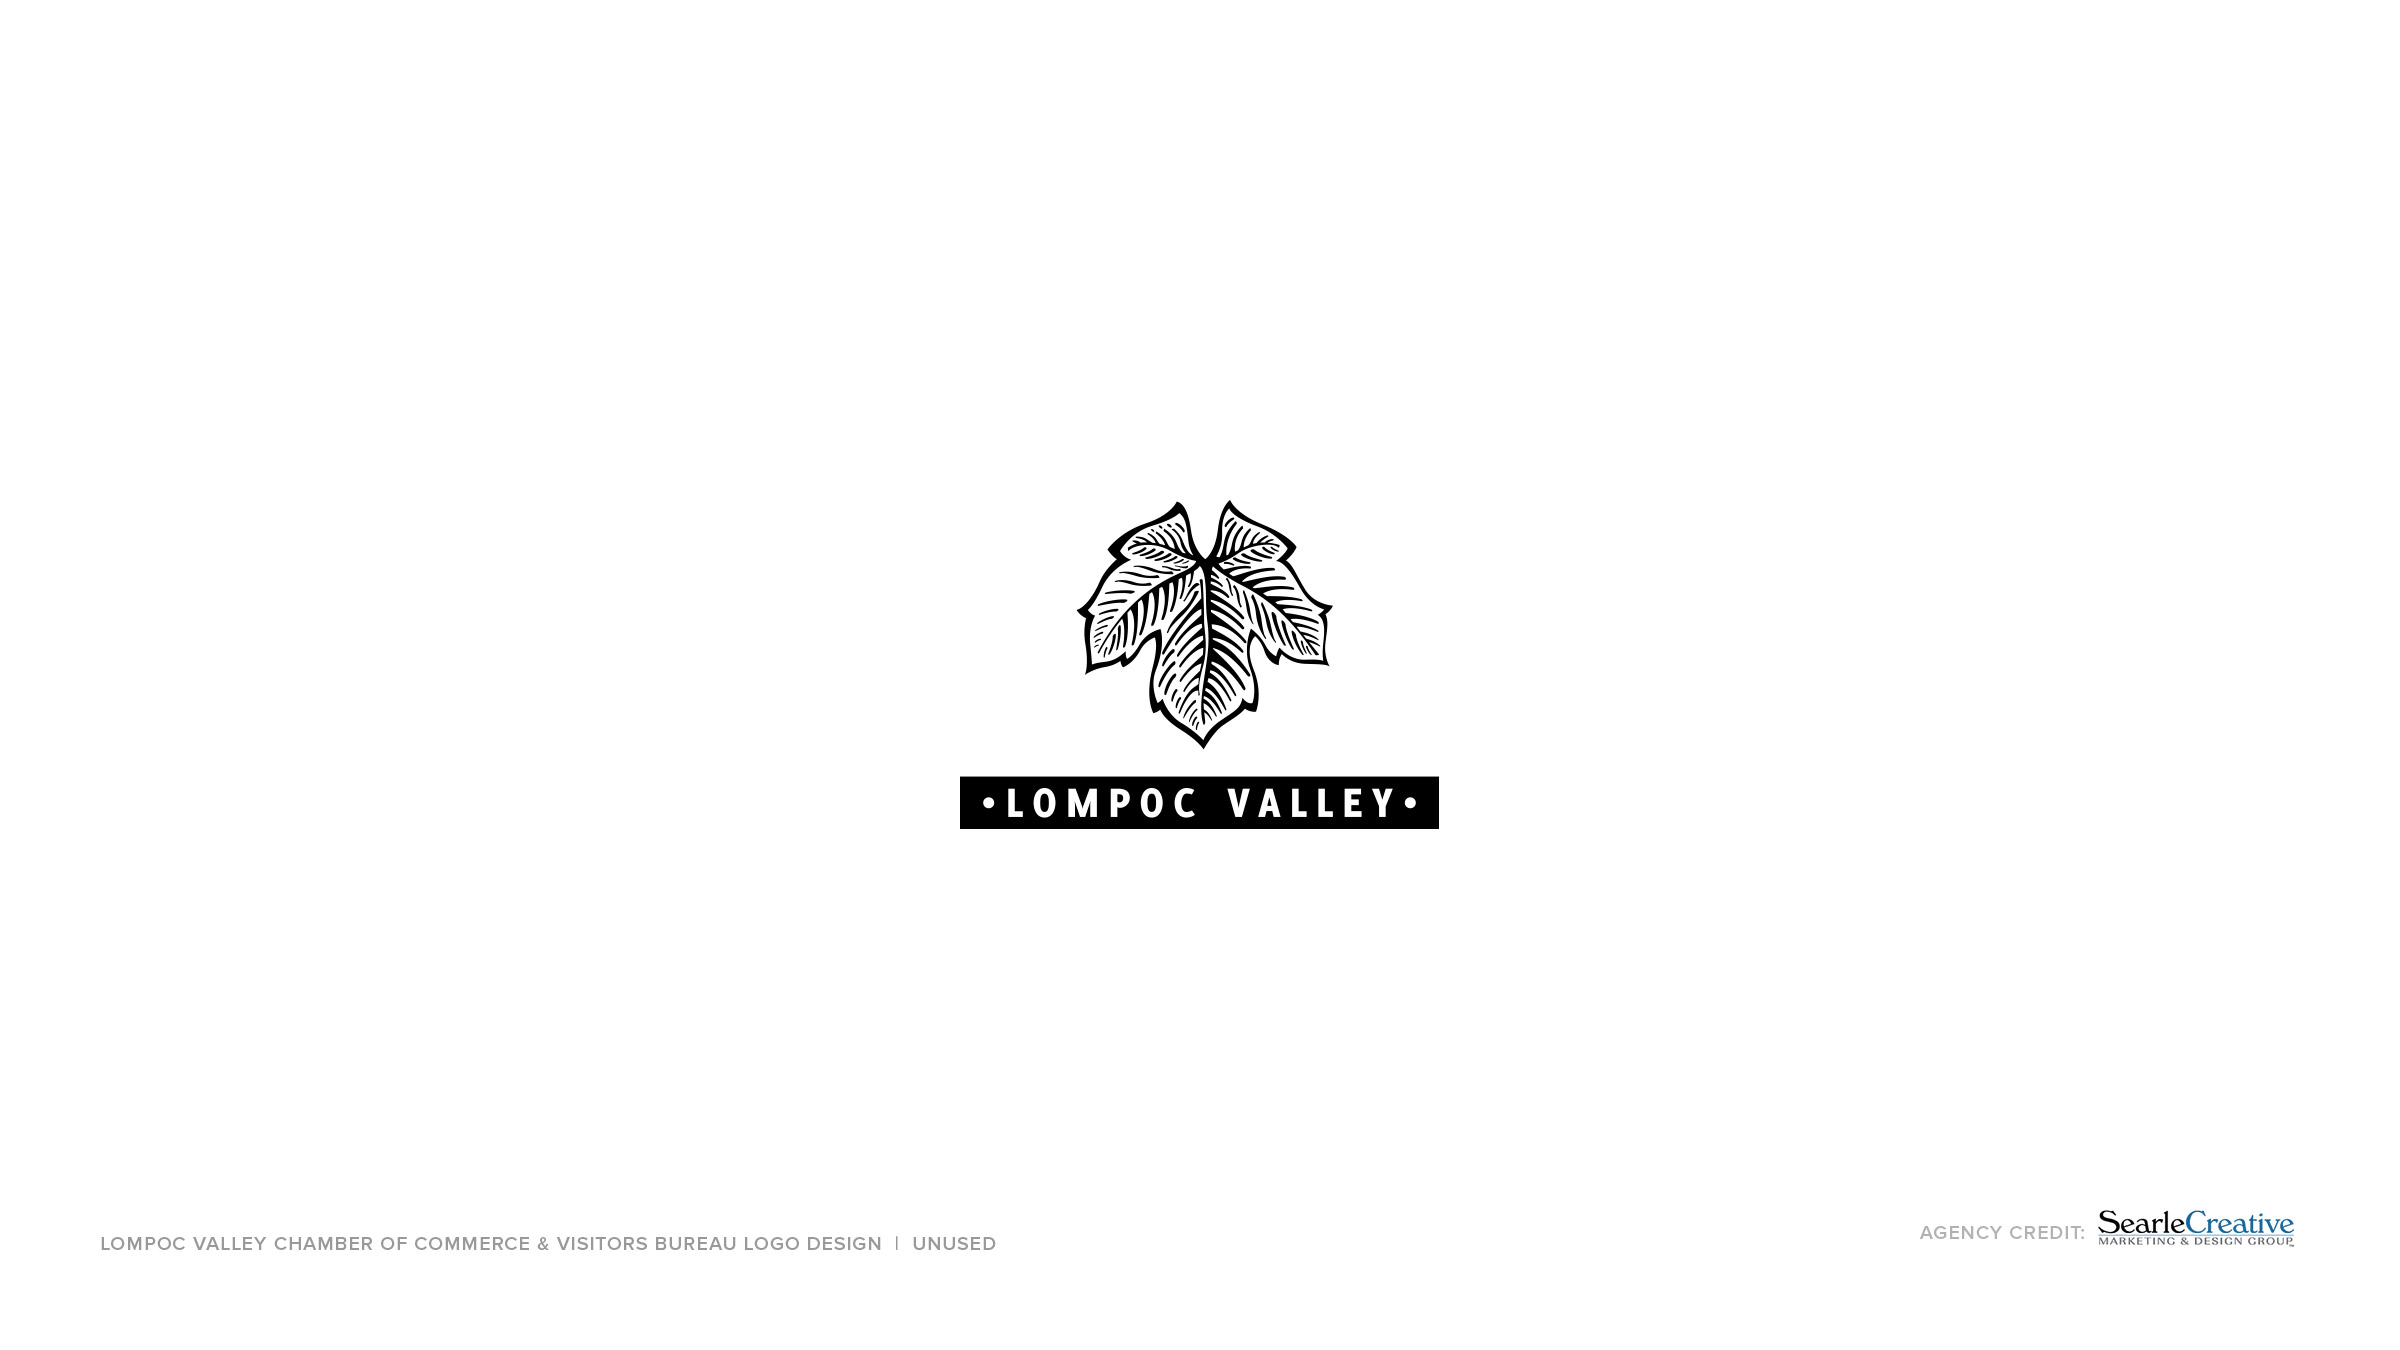 Logo-Design-Portfolio-v.2-Lompoc-Valley-Chamber-of-Commerce